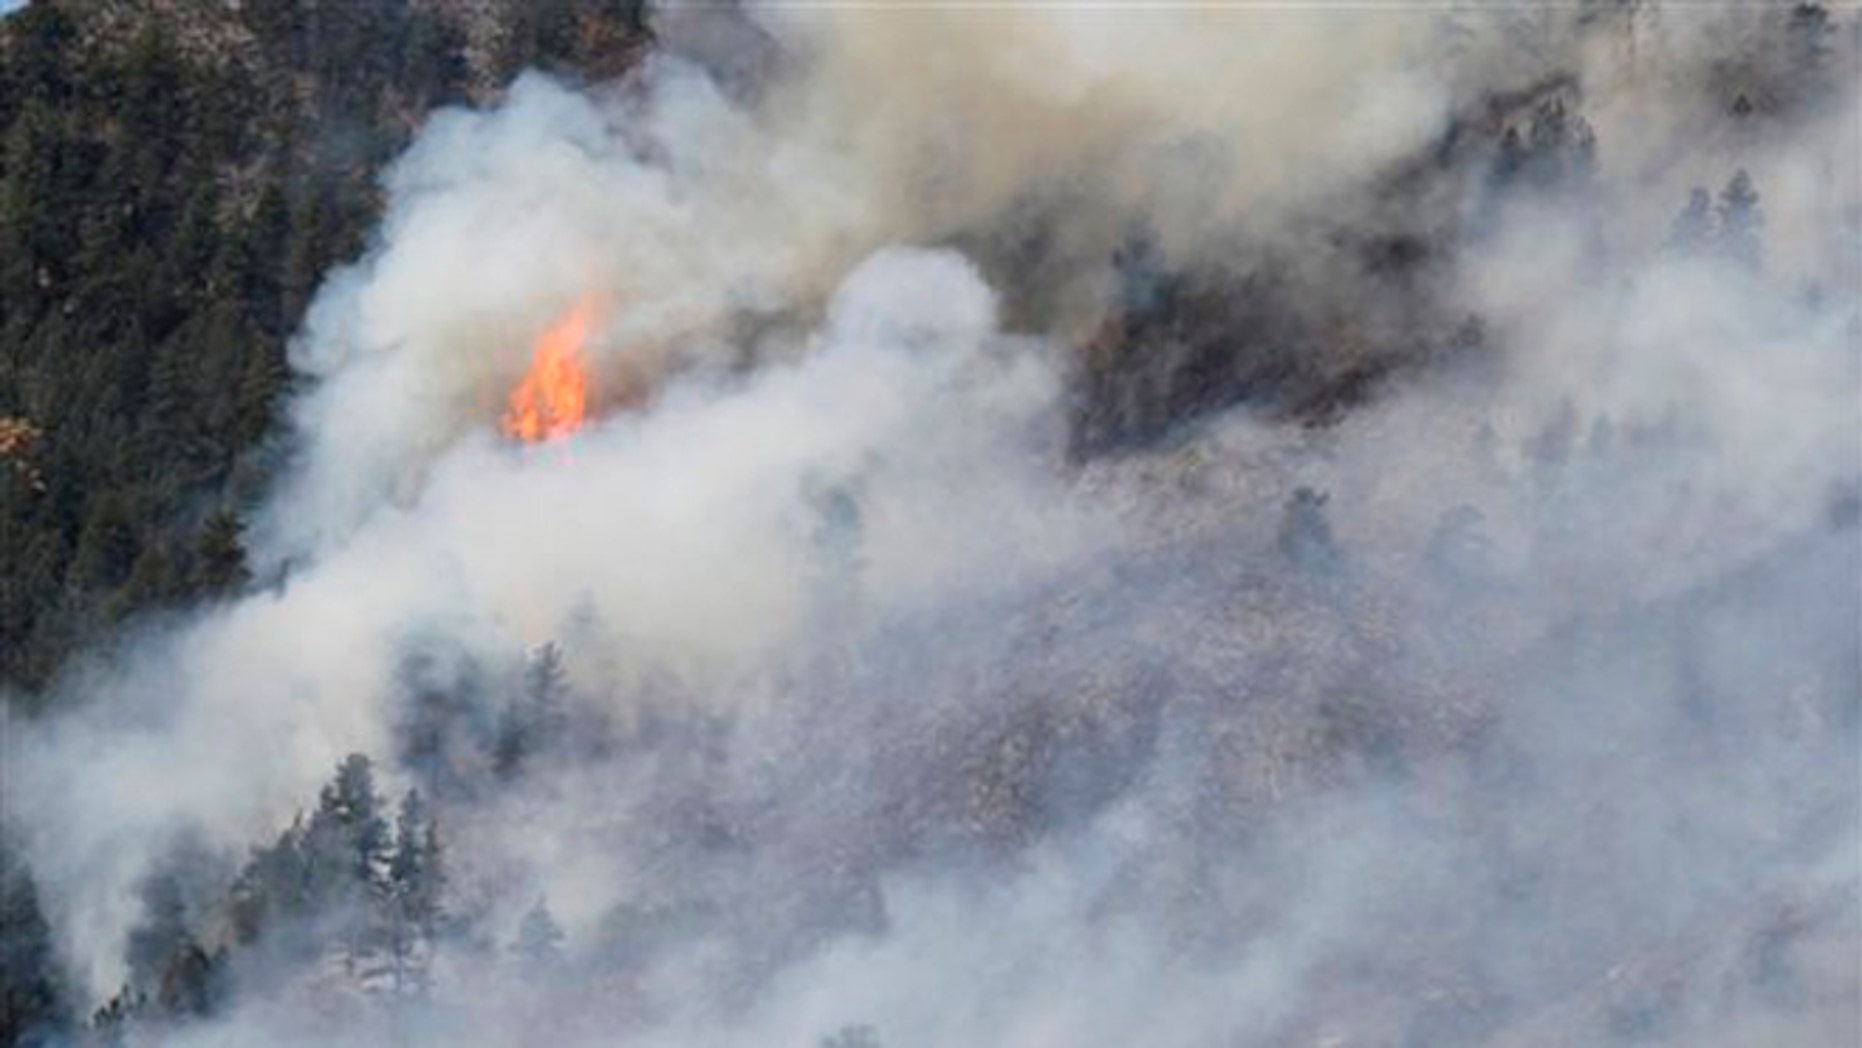 June 11, 2012: Fire burns through trees on the High Park wildfire near Fort Collins, Colo.